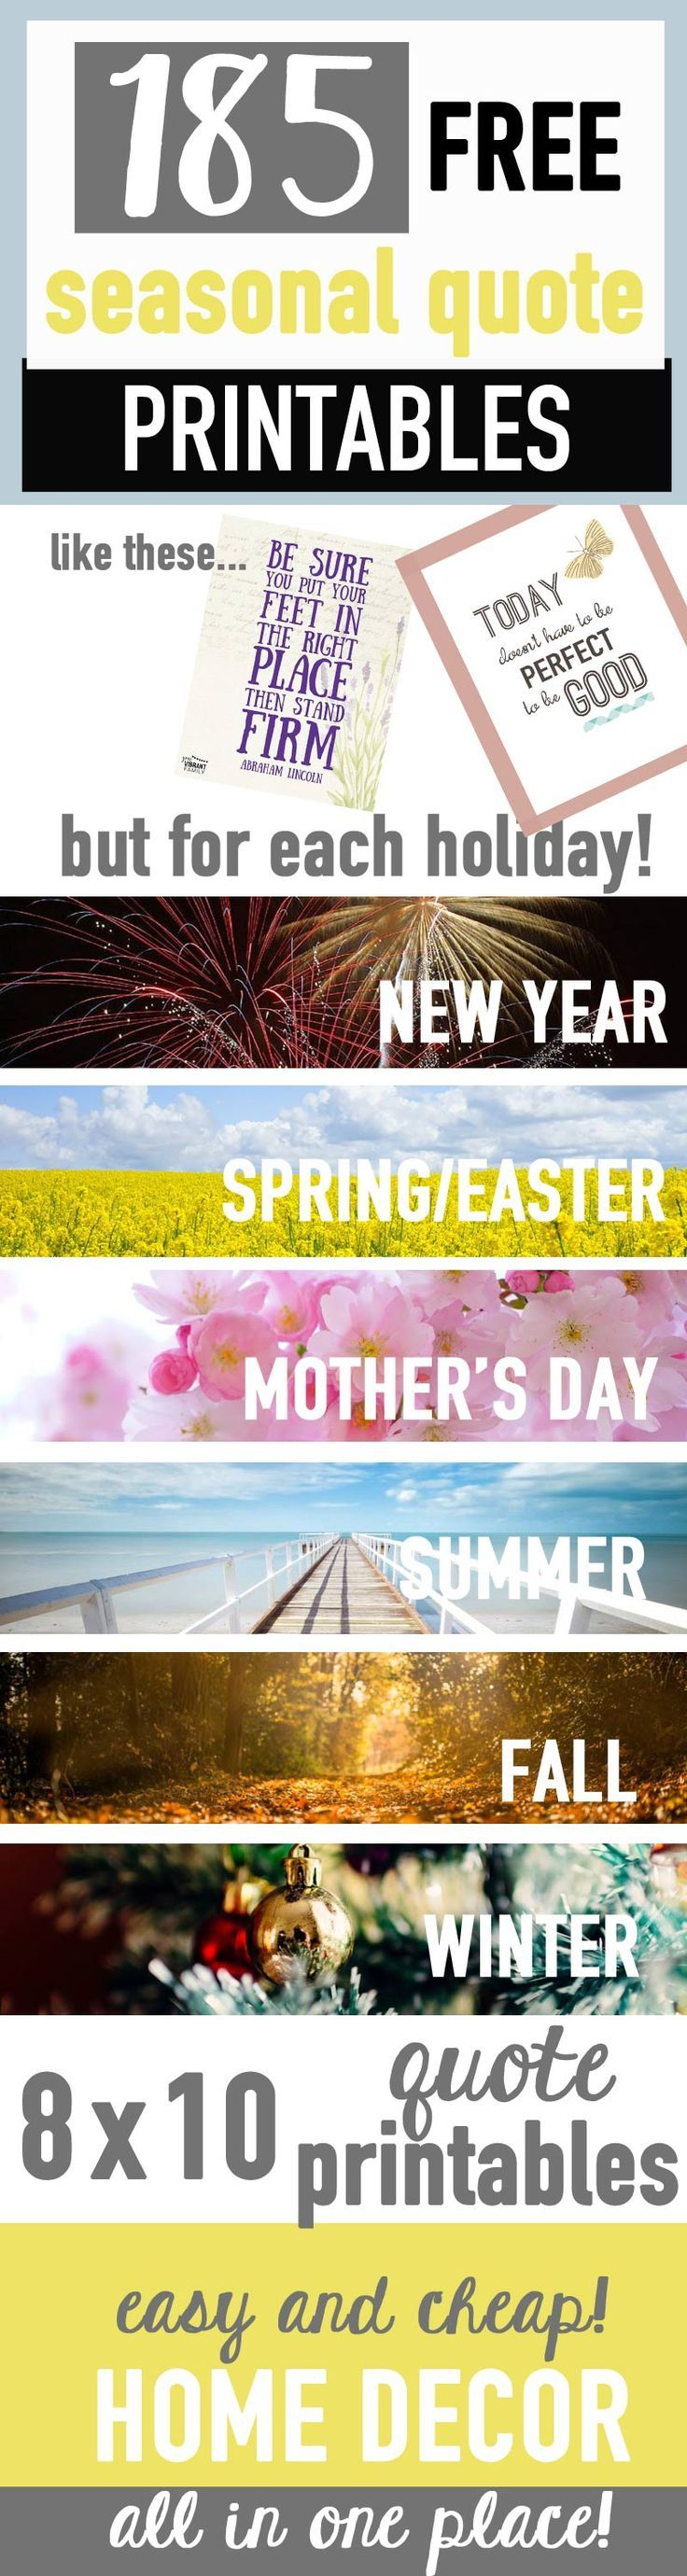 817 best printables fonts templates images on pinterest free